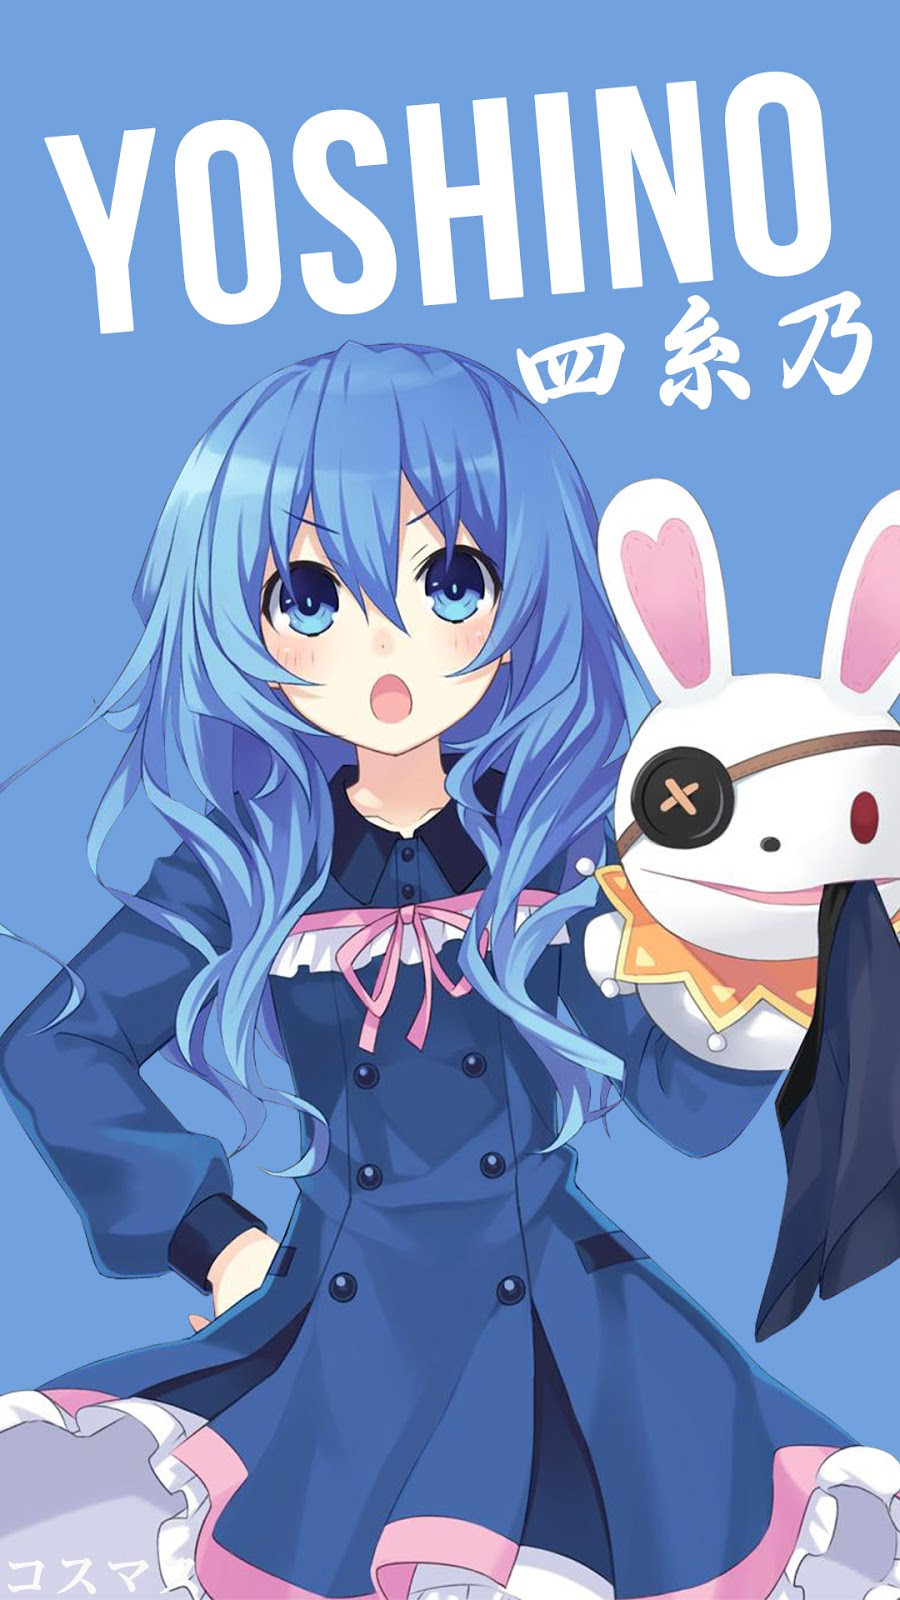 Yoshino Date A Live Anime Hd Wallpaper For Smartphone